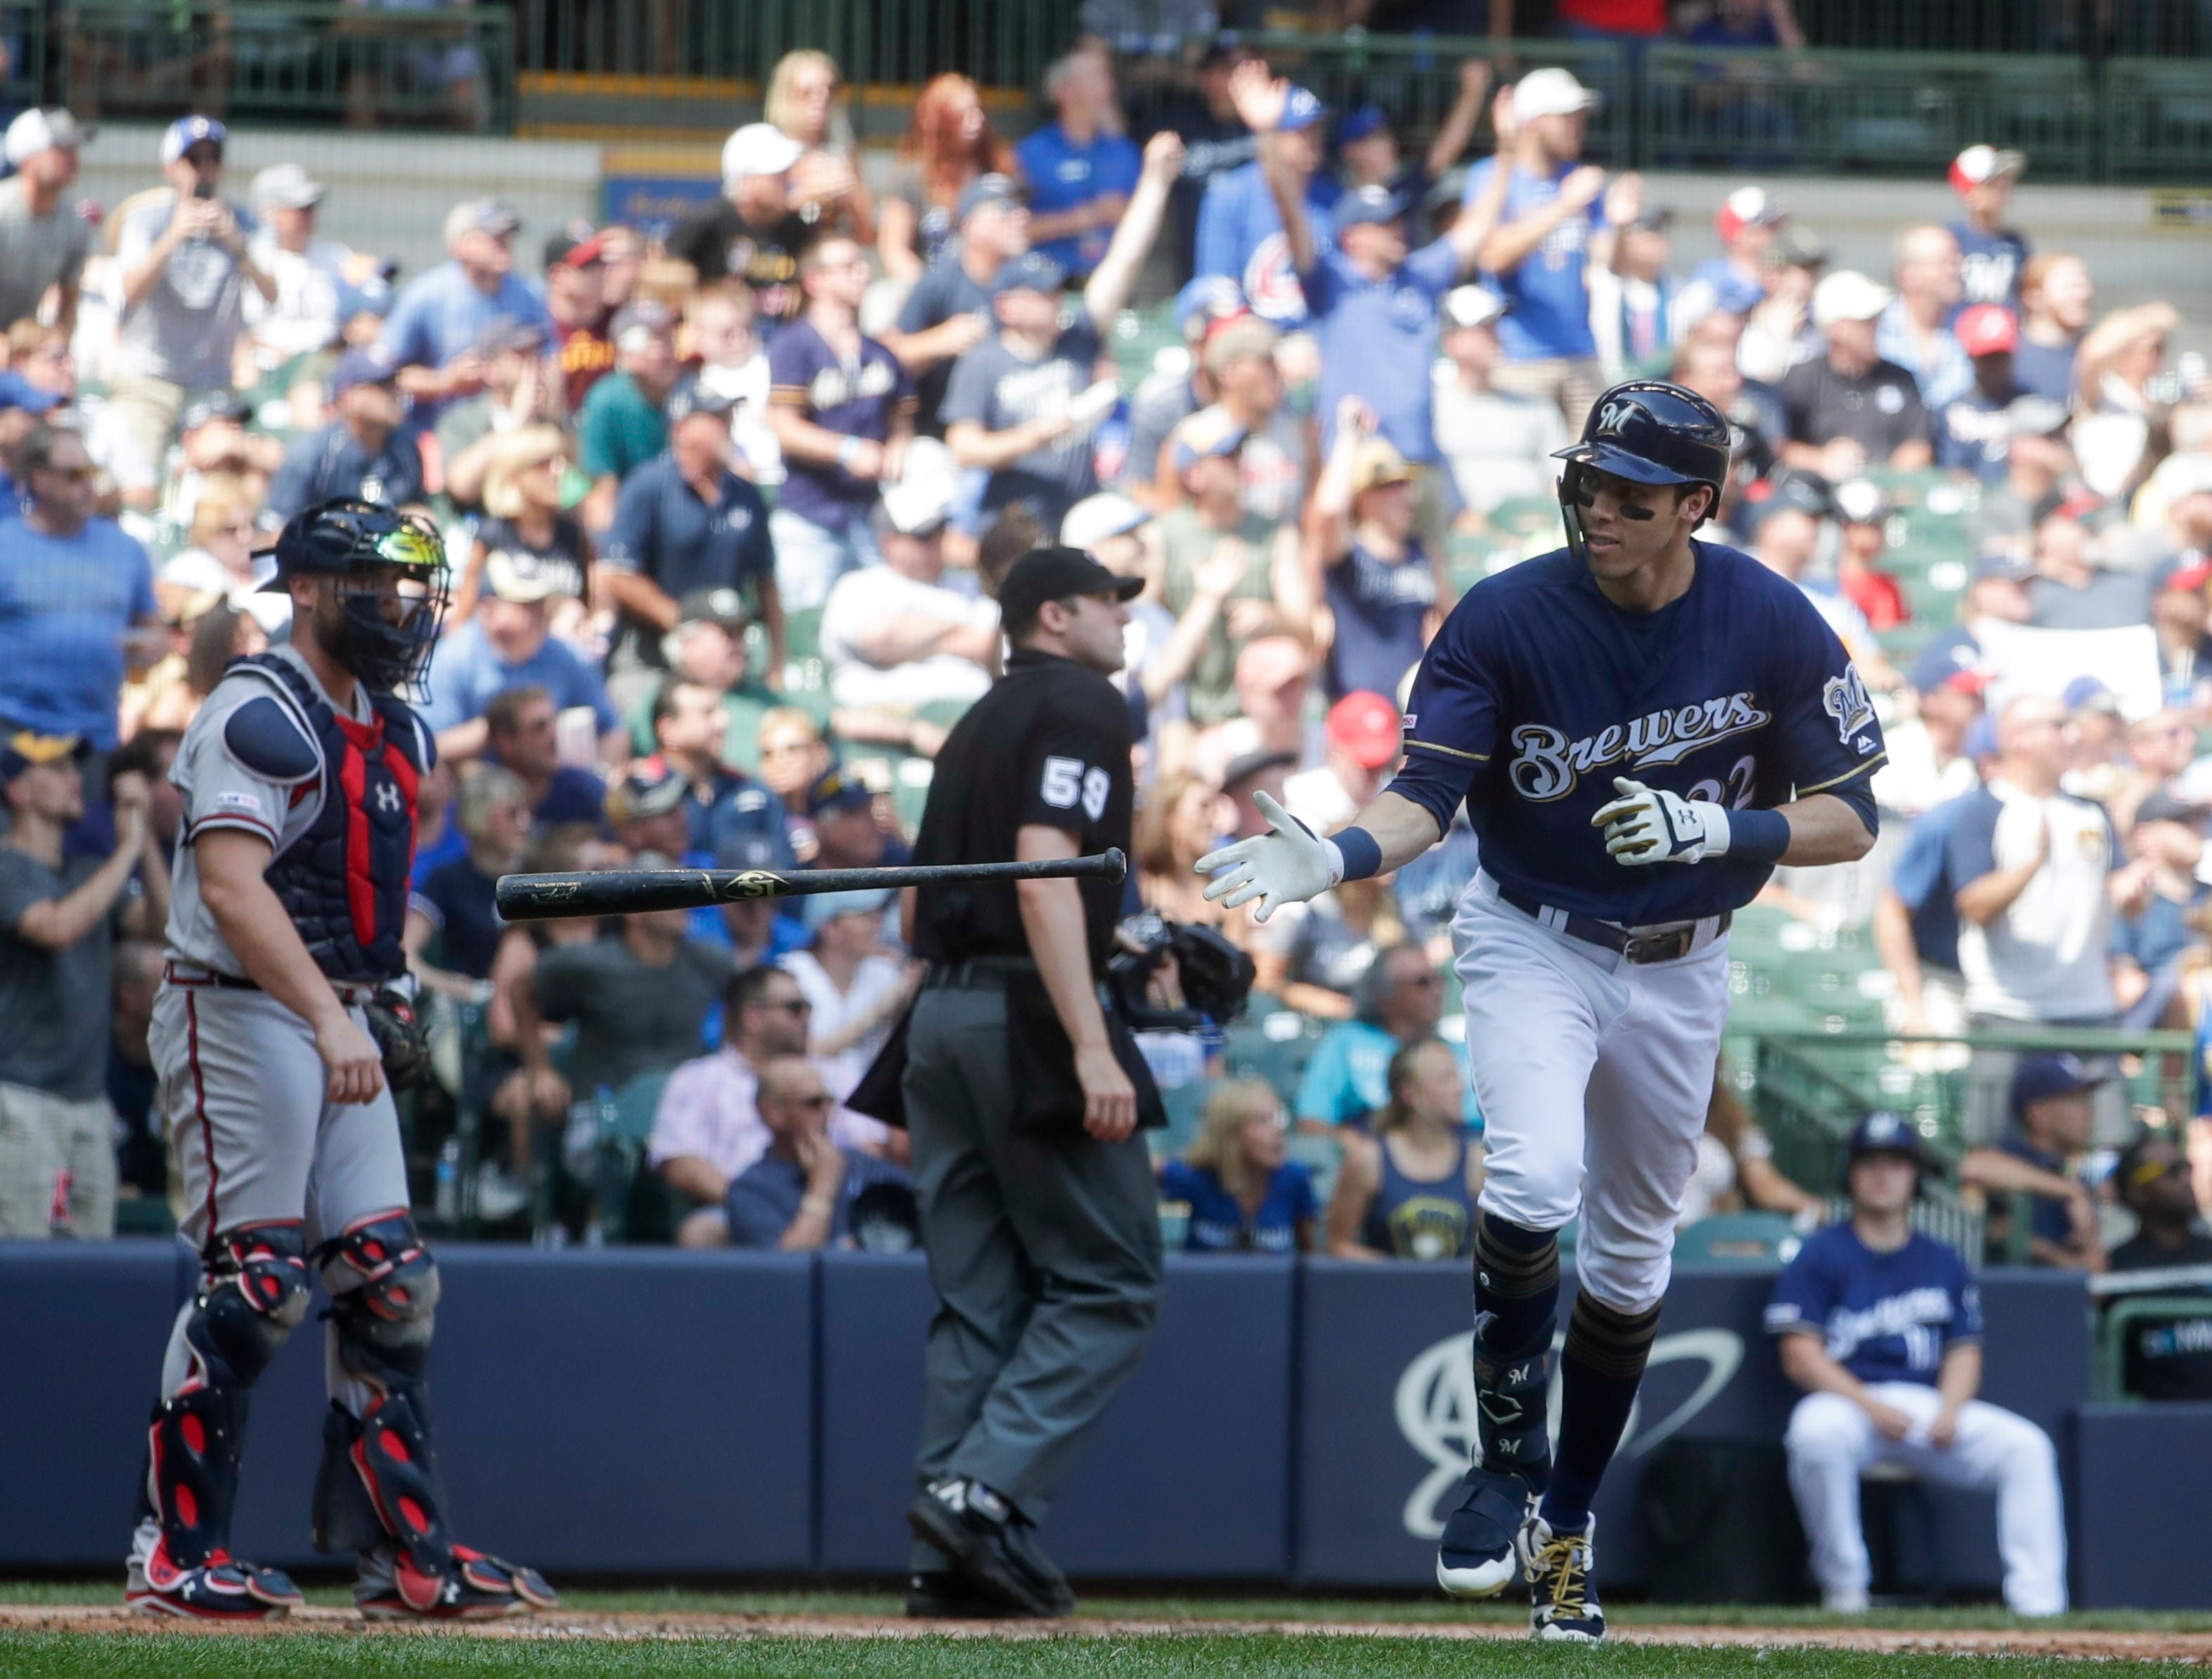 Brewers hang on for 5-4 win over Braves thumbnail